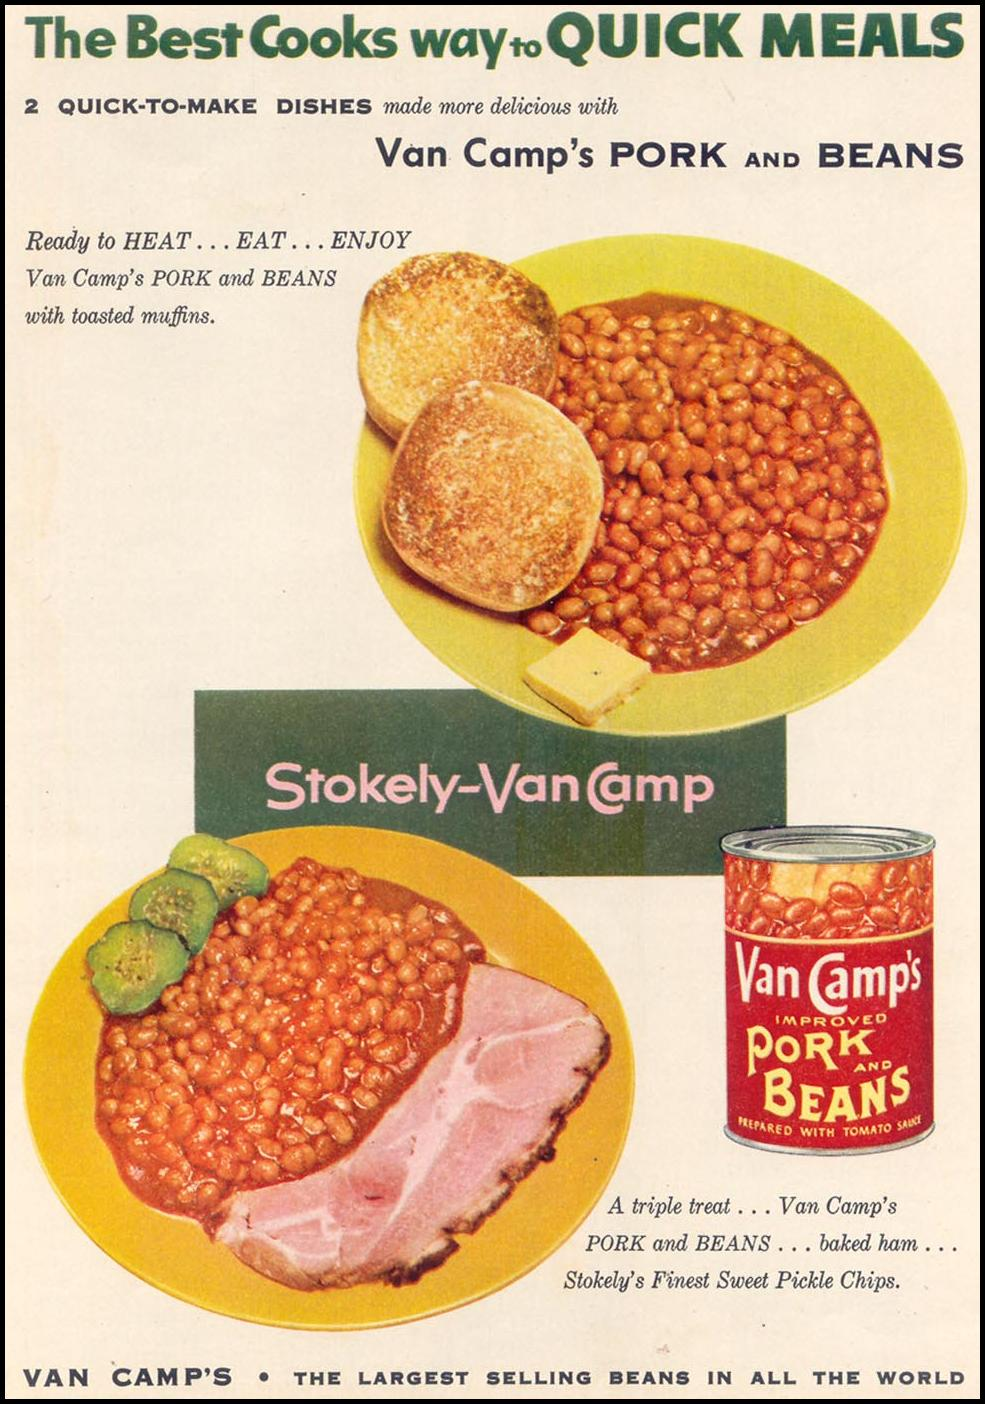 VAN CAMP'S PORK AND BEANS WOMAN'S DAY 03/01/1954 p. 21